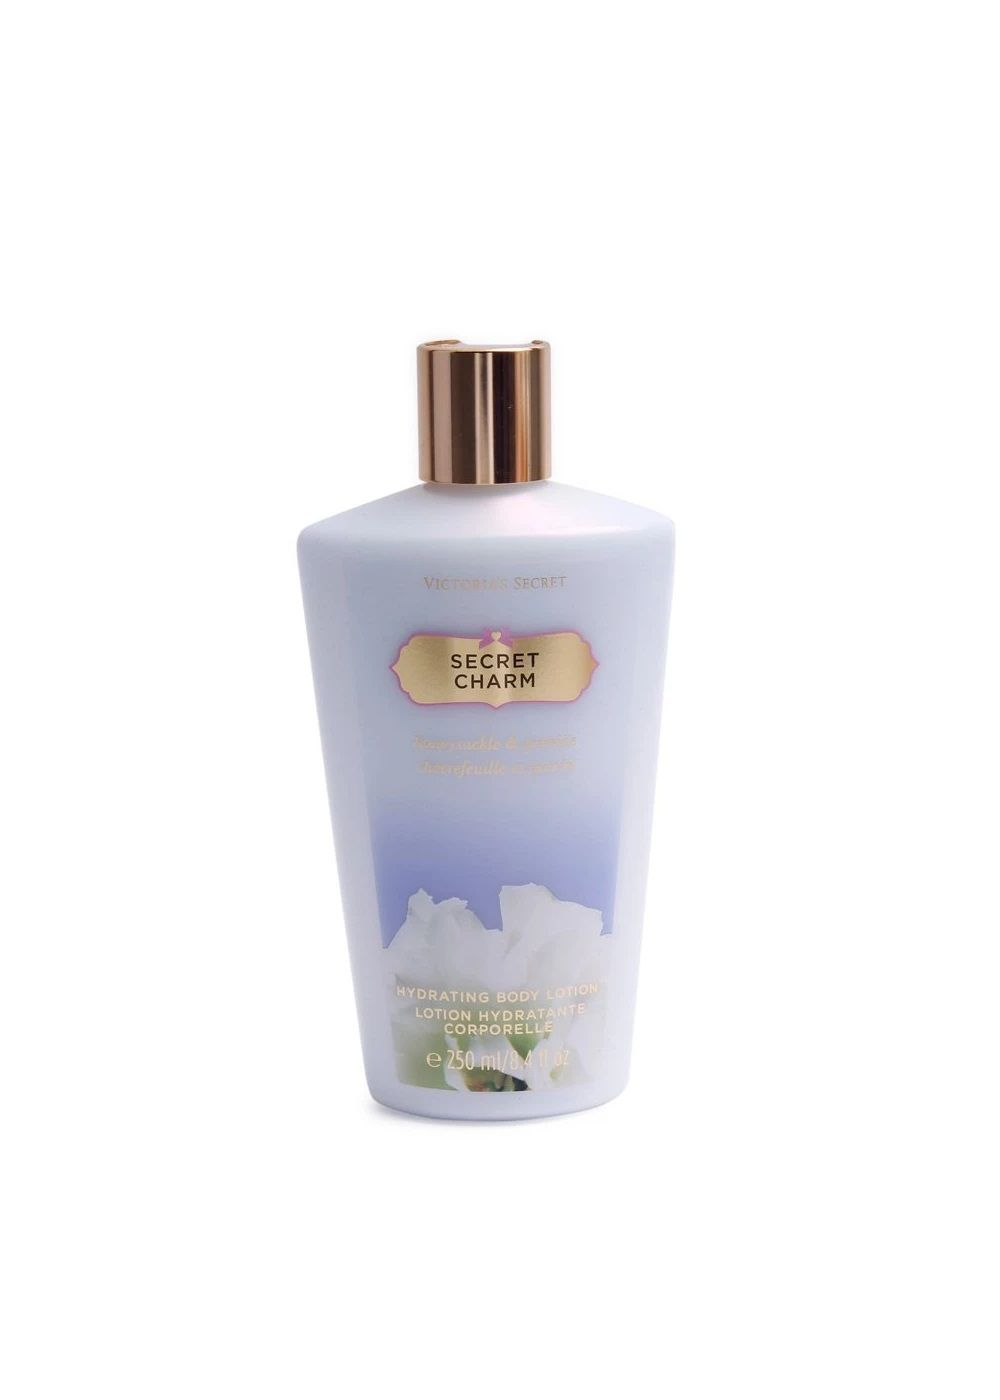 Is This 45 Body Lotion The Secret To Kim Kardashian's Body In THAT Photoshoot Is This 45 Body Lotion The Secret To Kim Kardashian's Body In THAT Photoshoot new pics